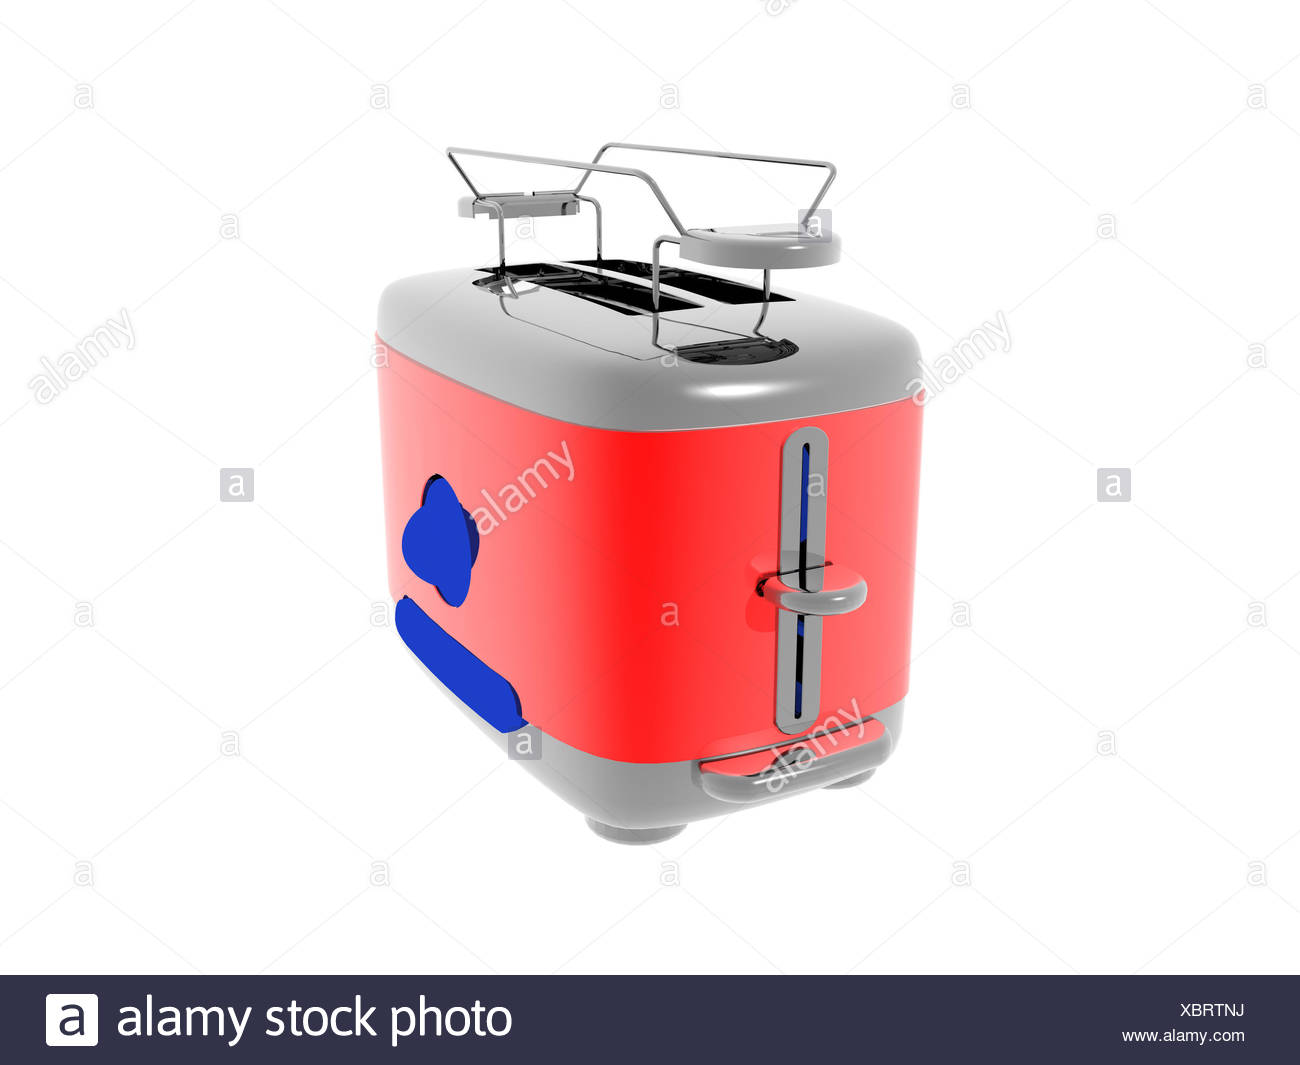 exempted toaster - Stock Image